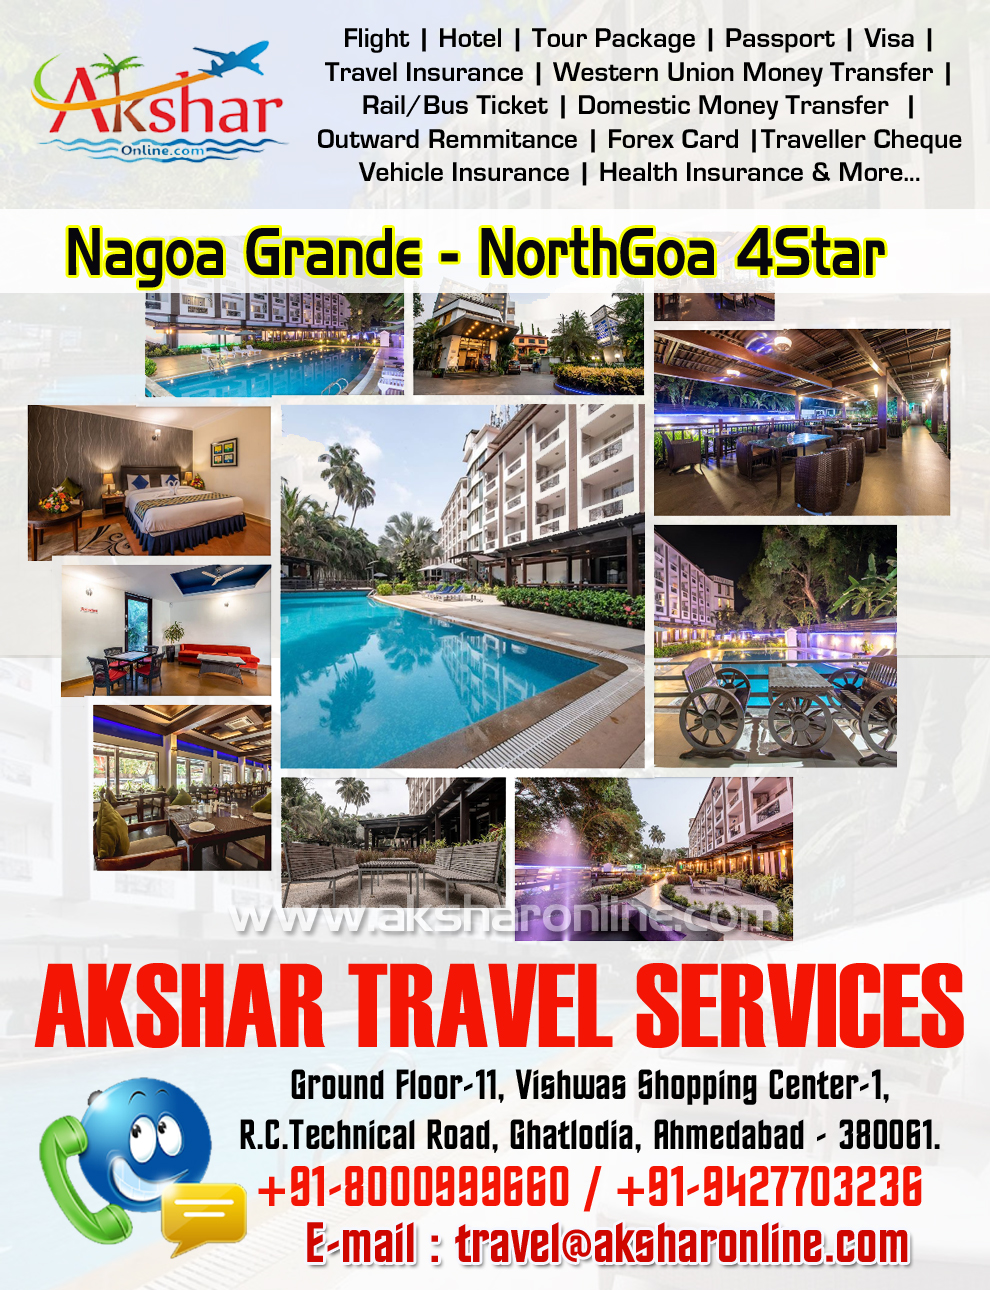 Nagoa Grande - Northgoa Address: No – 18, 1, Nagoa, Arpora, Goa 403516. Contact No 8000999660, 9427703236, Create memories to last a lifetime with tropical holidays at Nagao Grande, your preferred hotel in north Goa. Enjoy the relaxed Goan life in our luxurious, well-appointed rooms, indulge in your favourite dishes at our spacious dining areas or unwind with expert therapists at our spa. And what's more, you can plan a successful party or a business conference with our unmatched services and hospitality. Nagoa Grande is just 4kms from the famous Calangute beach and Baga beach in north Goa, and a short drive away from vibrant markets and tourist sites, night life and adventure. So come, experience the best of Goa with Nagoa Grande., Choose from 62 thoughtfully designed Superior Rooms, fully equipped with modern amenities. Enjoy 340 sq ft of elegant décor, comfort, and warm service. Goa 4Star Hotel Package with Pickup Drop Transfer and Sightseeing, goa tour package, akshar travel services, akshar infocom, aksharonline.com, ghatlodia, ahmedabad, gujarat, travel agency in ahmedabad, tour operator in ahmedabad, goa hotel, goa flight, goa resort, info.akshar@gmail.com